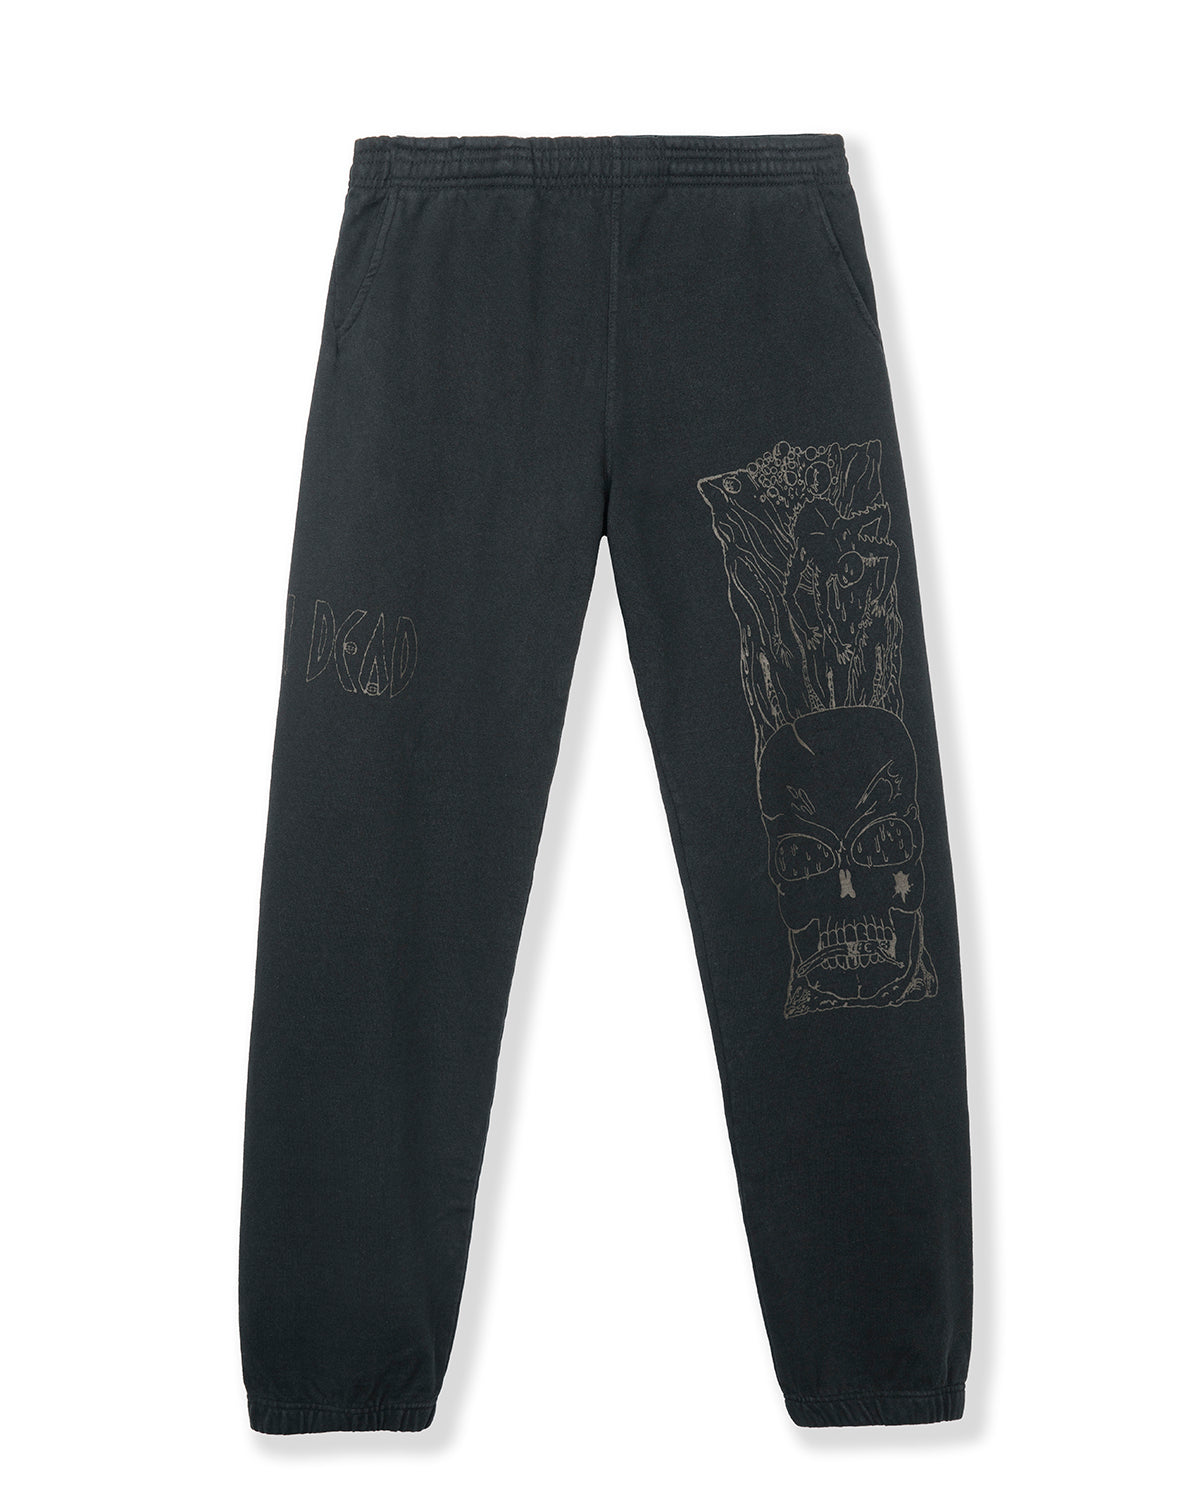 Matt Lock Sweatpants - Black